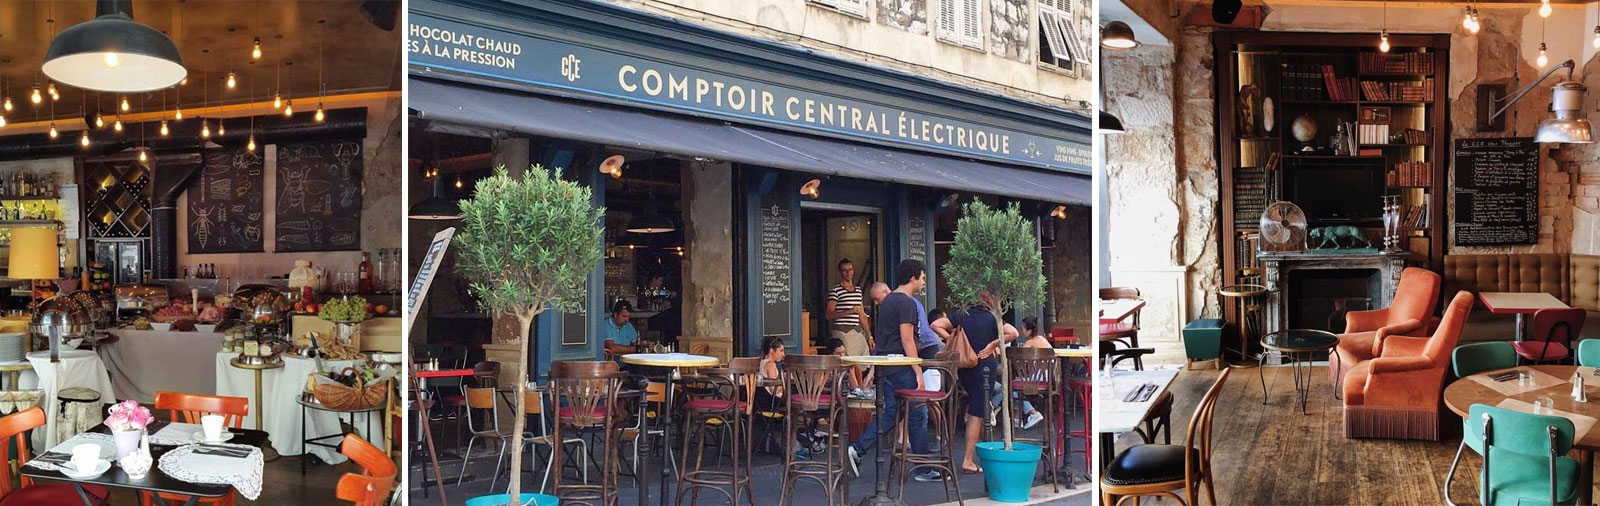 Comptoir Central Electrique - Trendig bar i Nice